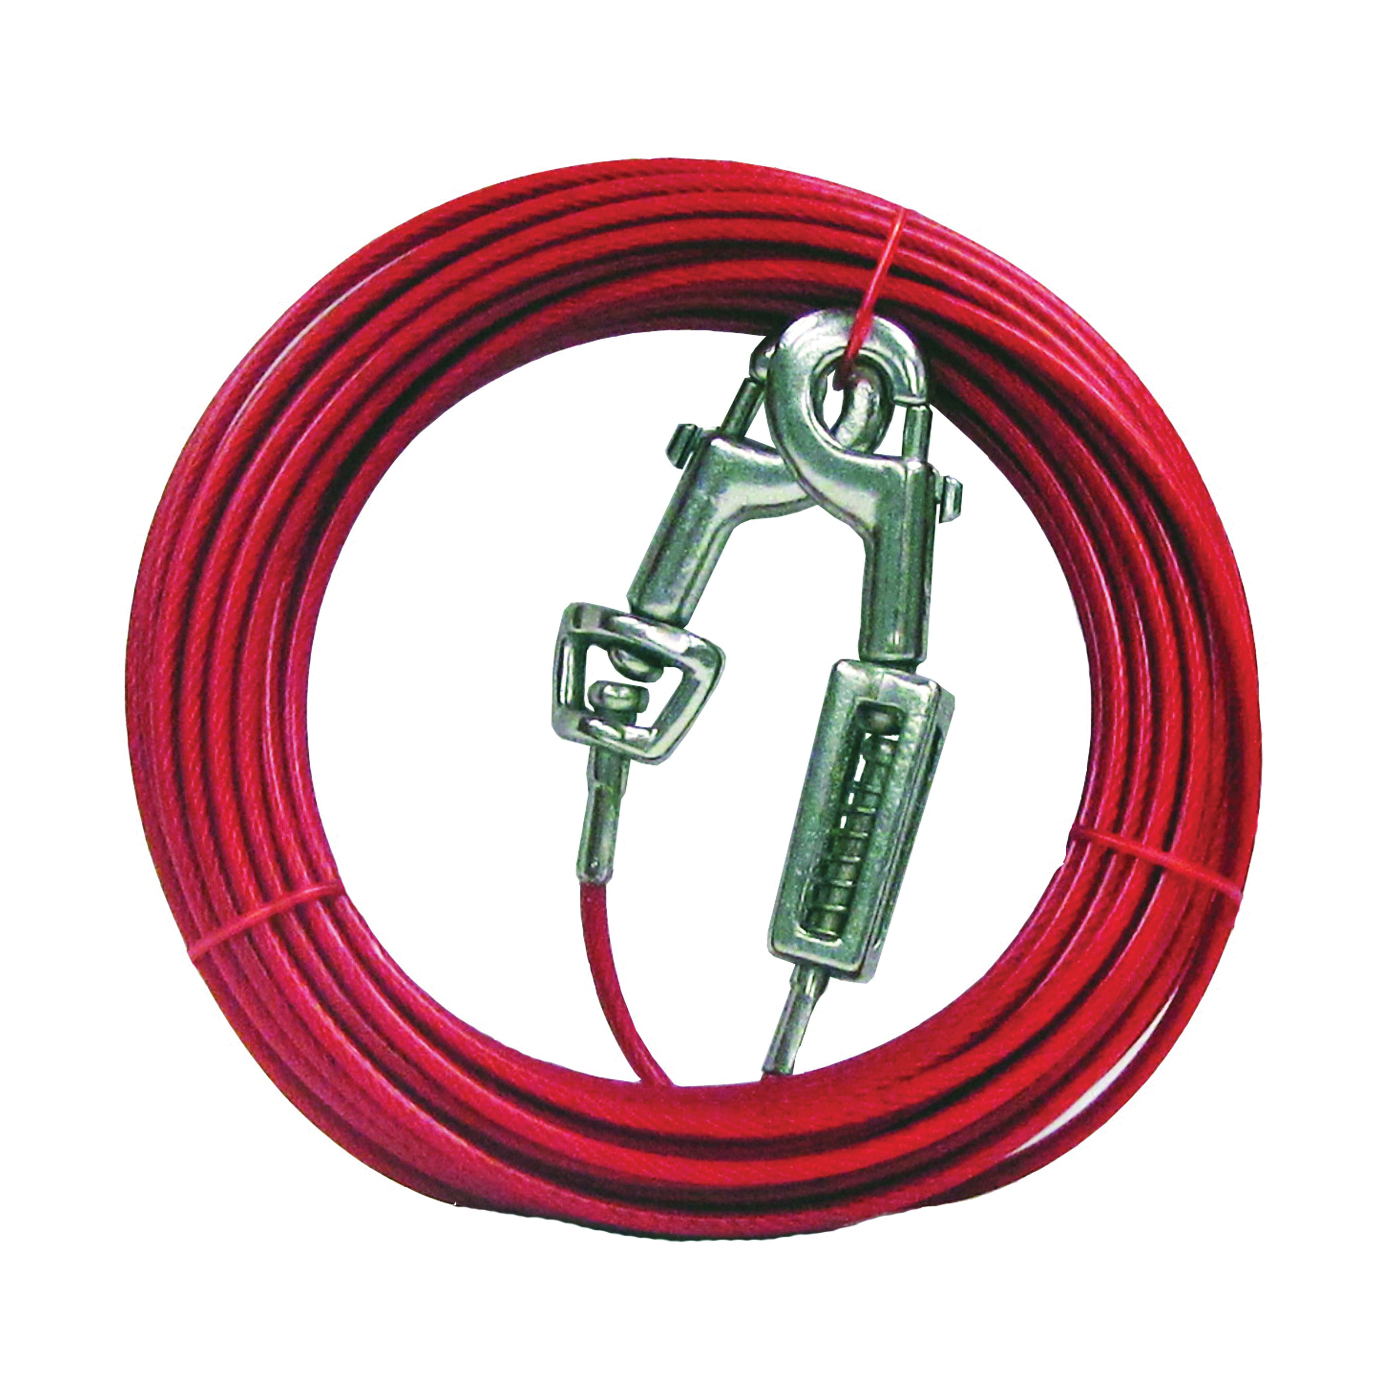 Picture of Boss Pet PDQ Q3520SPG99 Tie-Out with Spring, 20 ft L Belt/Cable, For: Large Dogs up to 60 lb